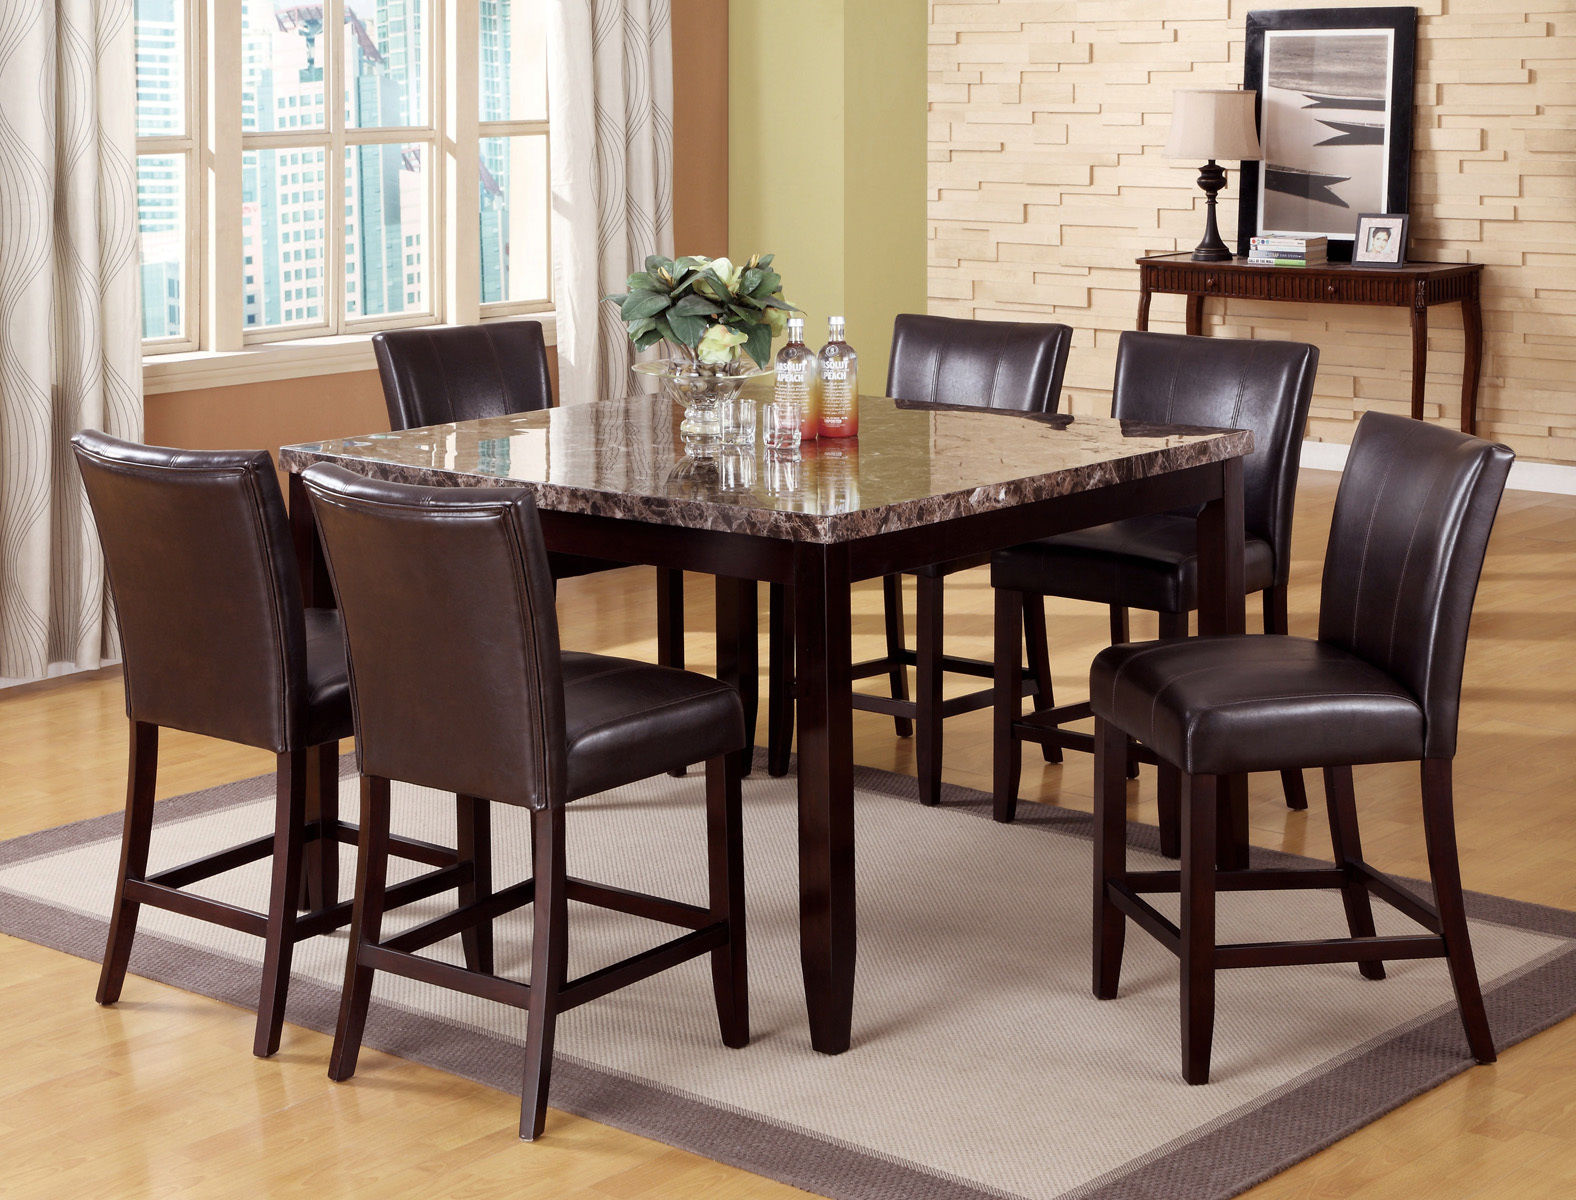 Couter Height 7pc Set Marble Table 6 Chairs Hot Sectionals